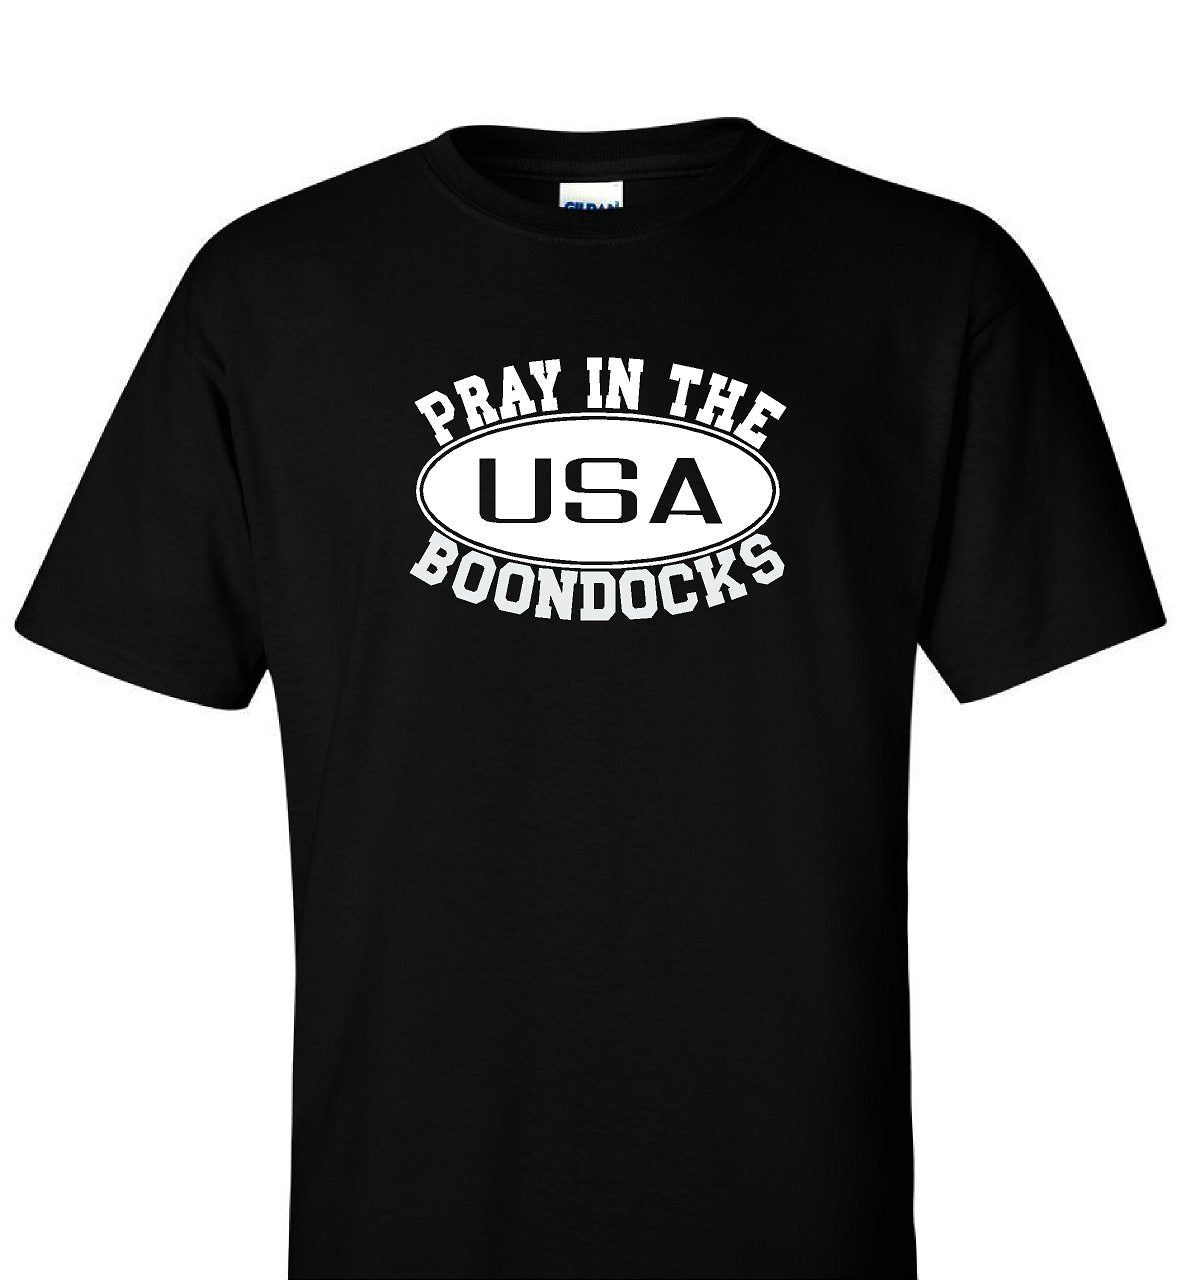 Boondocks T-Shirt • PRAY IN THE BOONDOCKS Logo